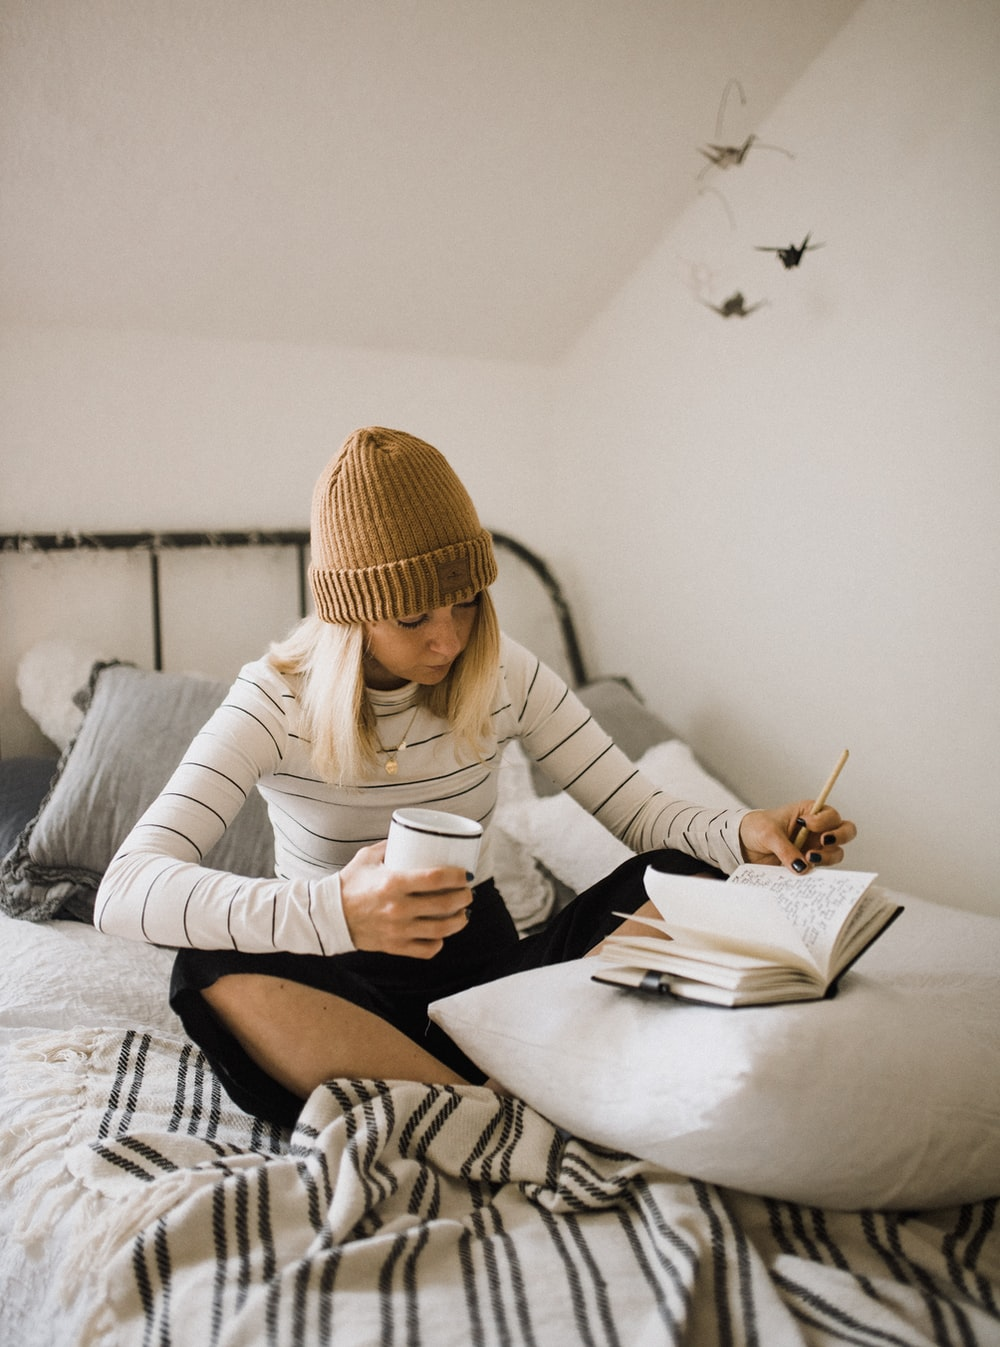 woman in striped shirt sitting on bed while writing